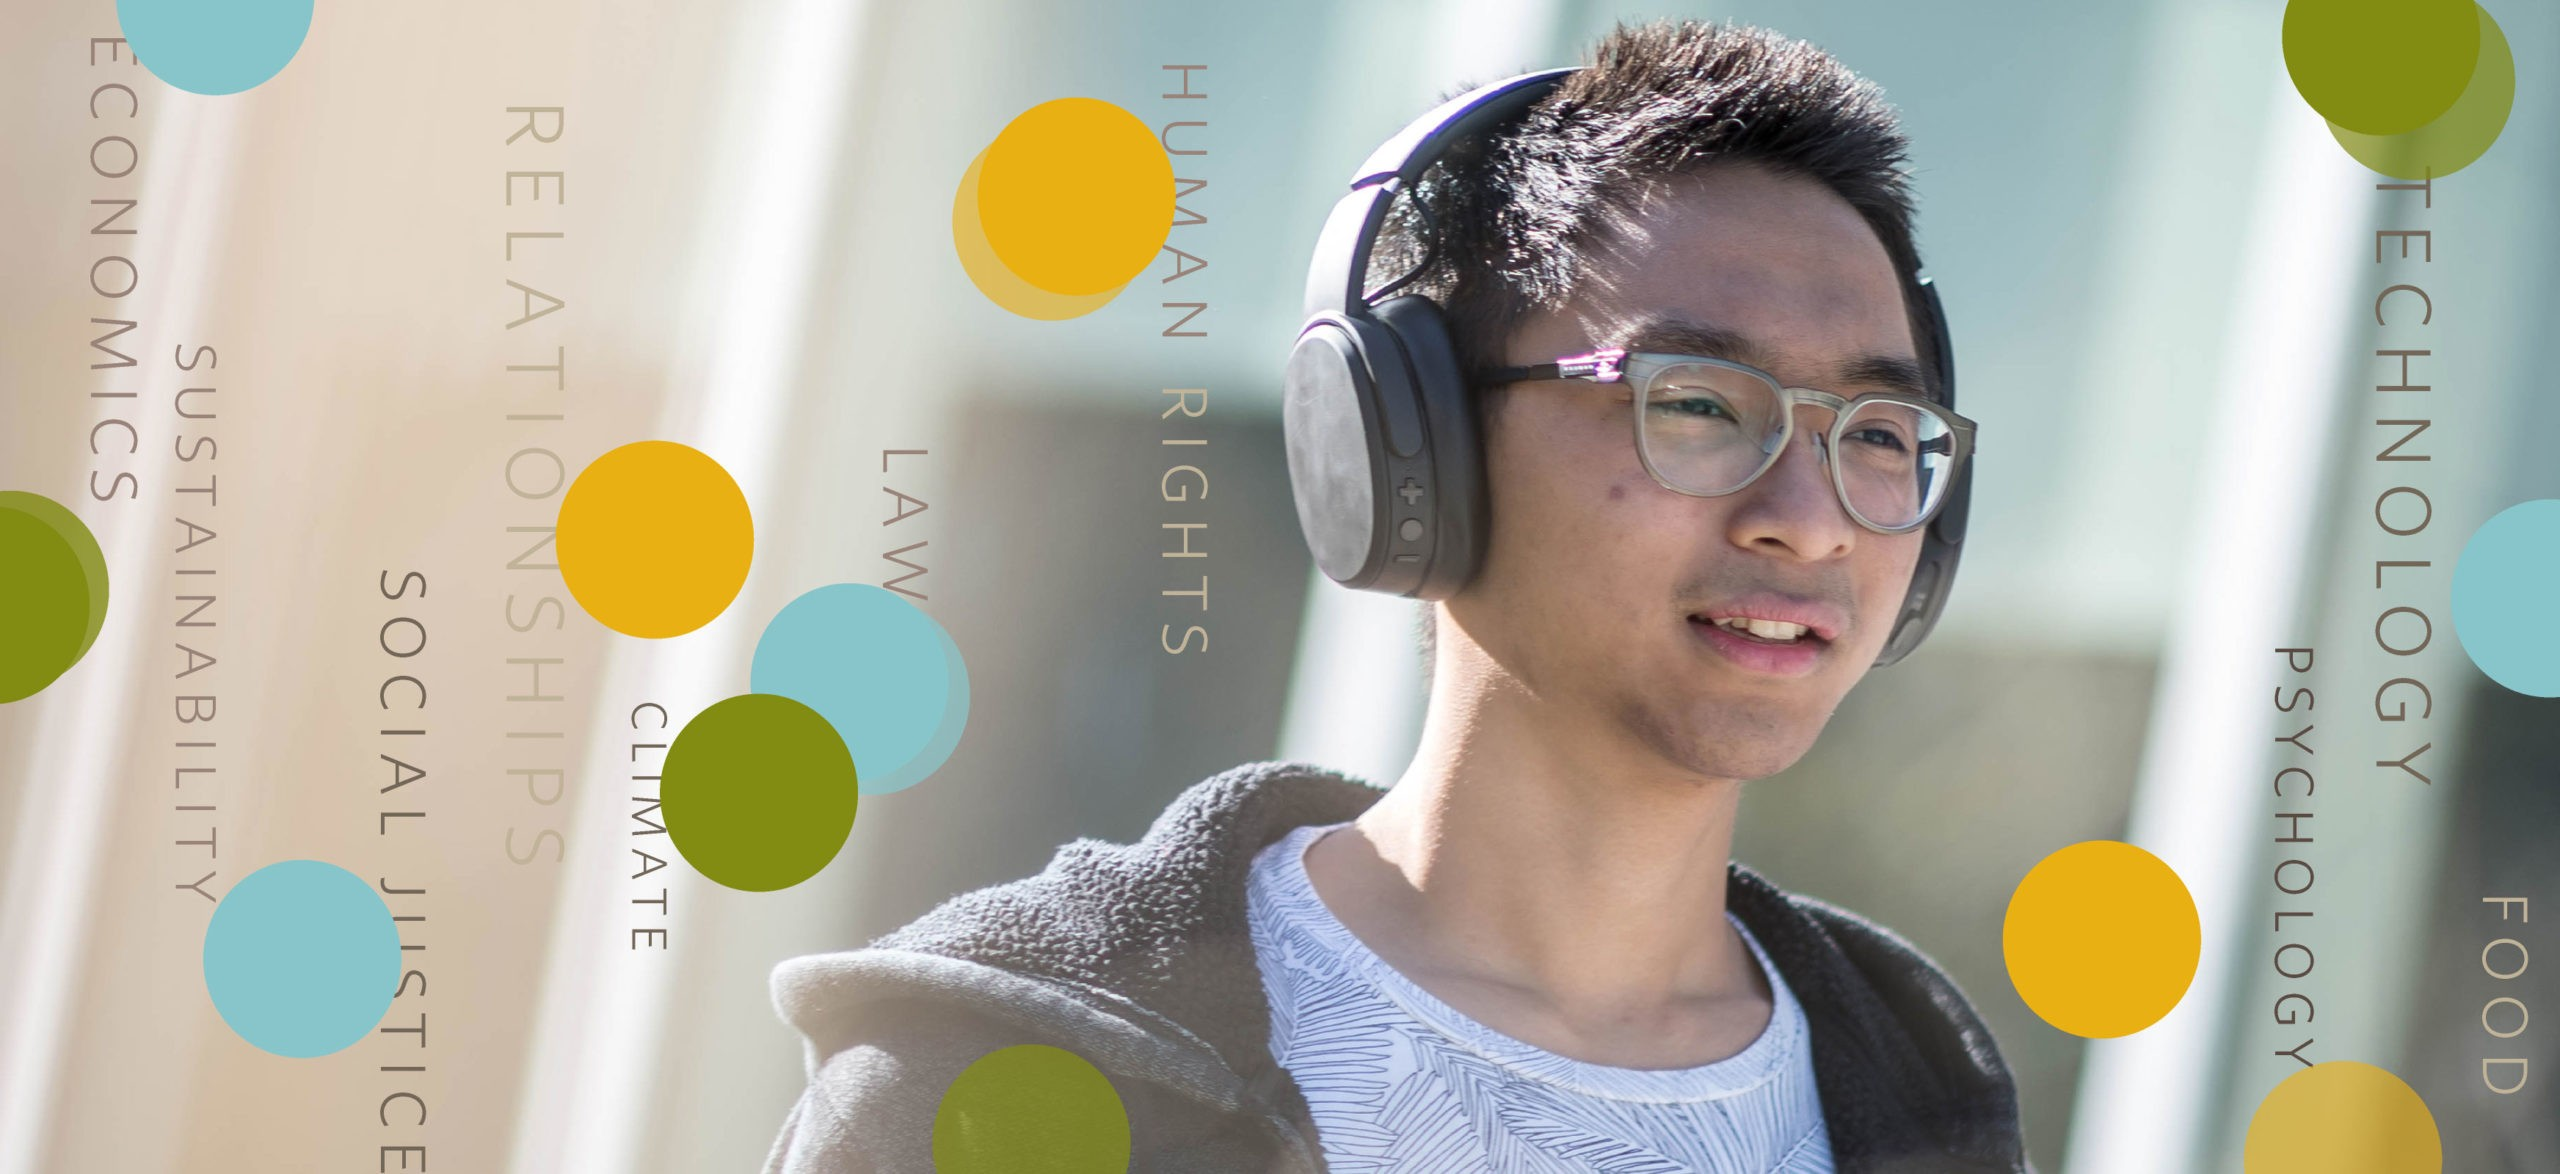 A person listens to UBC talks on his headphones